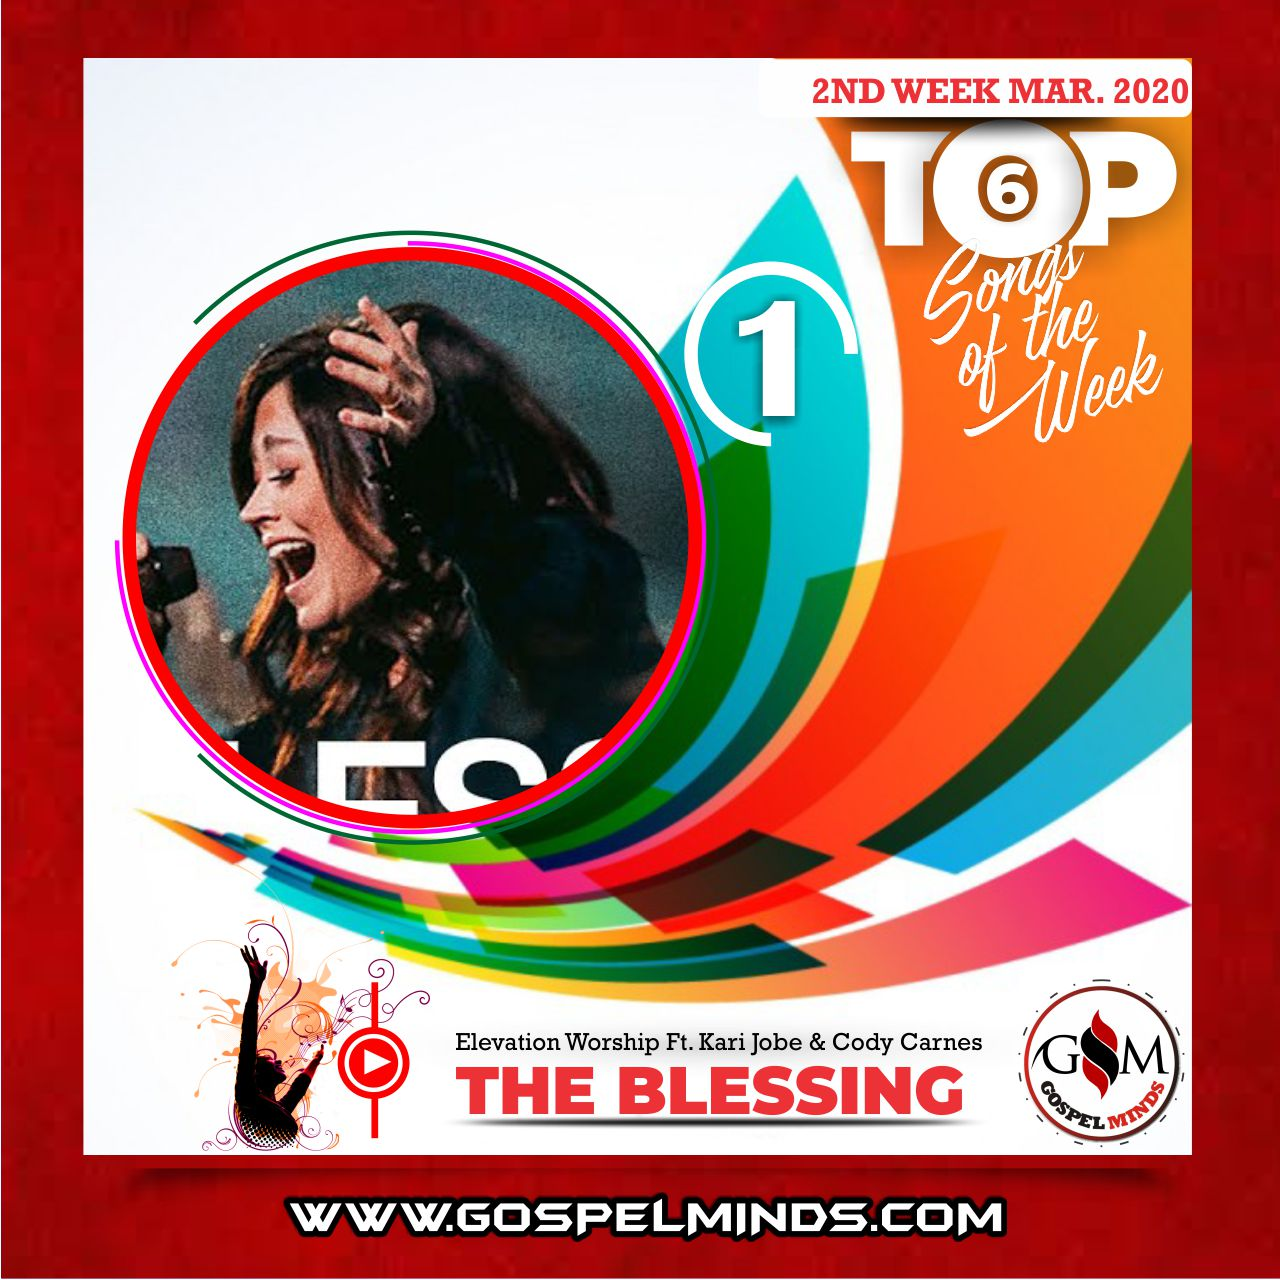 March 2nd Week 'Top 6 Gospel Songs Of The Week' Elevation Worship - The Blessing Ft. Kari Jobe & Cody Carnes